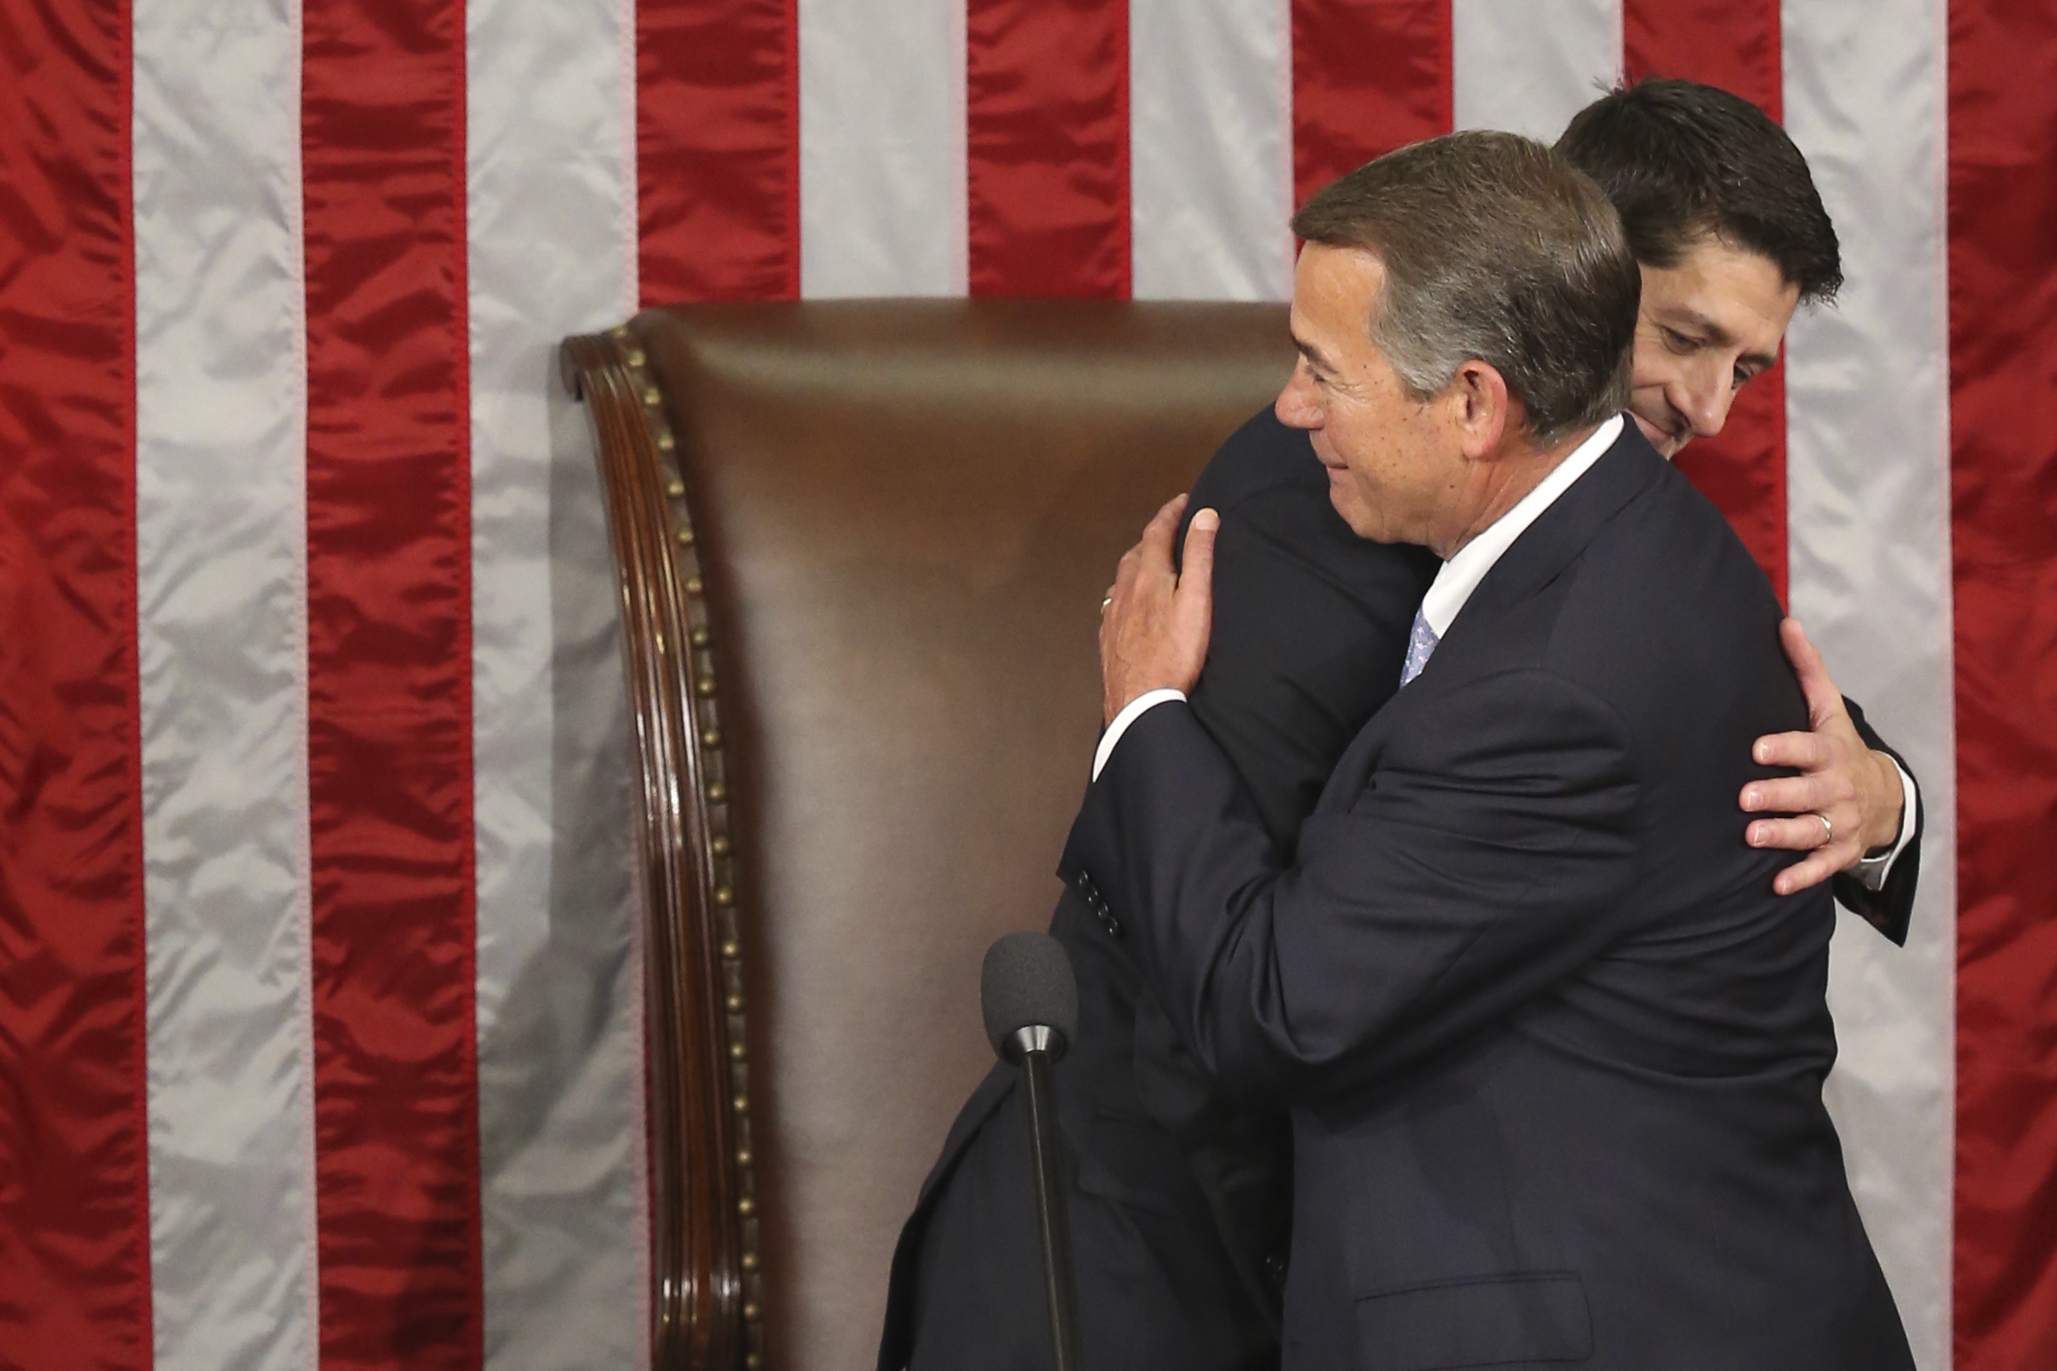 speakers house. paul ryan elected speaker of the house, youngest in 150 years - washington times speakers house